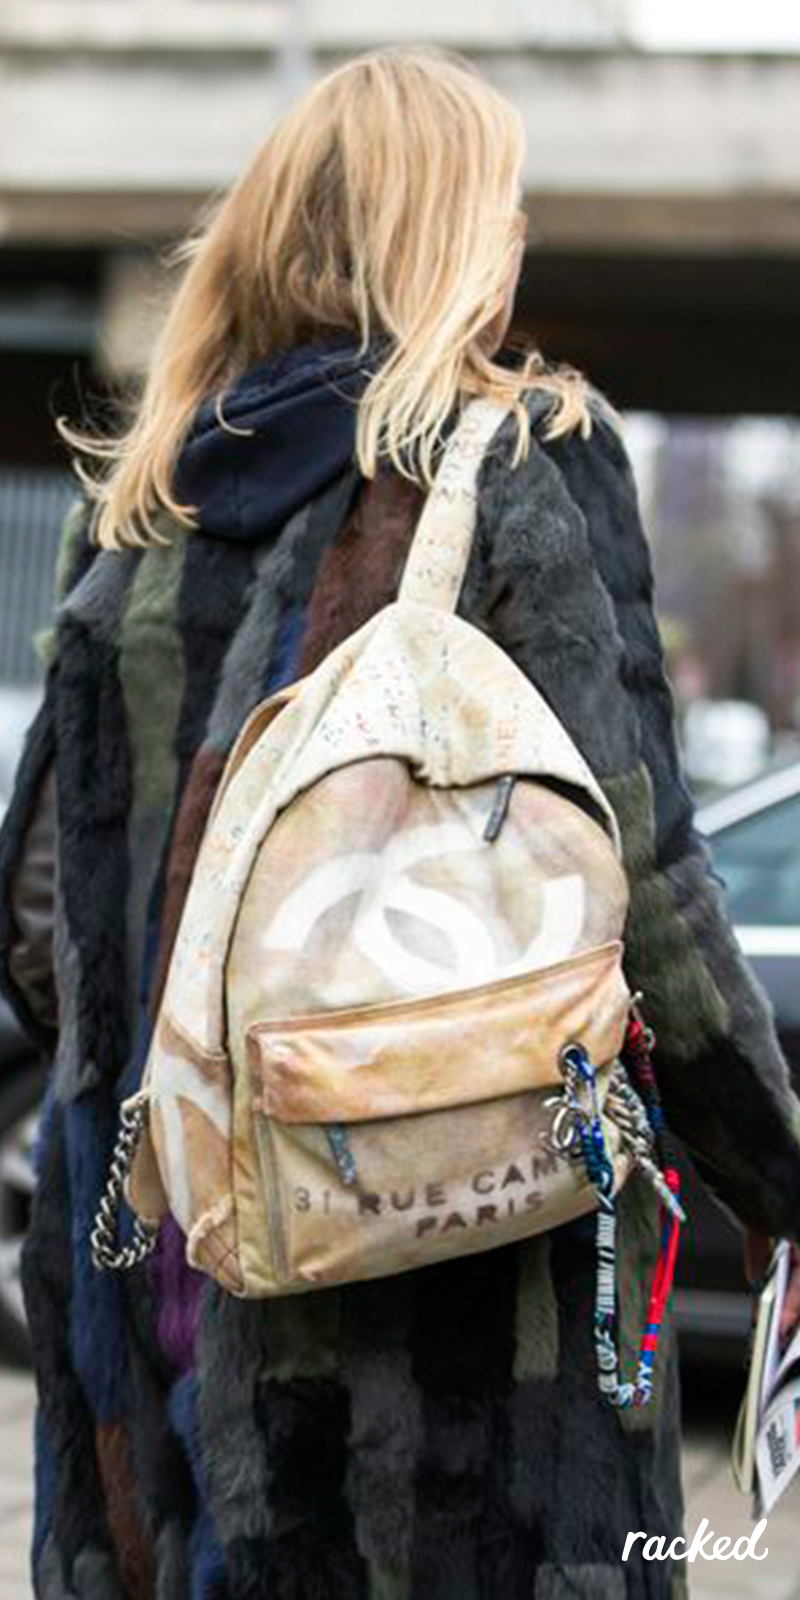 A Chanel Backpack, as Seen at London Fashion Week // More Winter Style Ideas from the Best LFW Fall 2016 Street Style: (http://www.racked.com/2016/2/23/11096906/street-style-london-fashion-week-fall-2016)